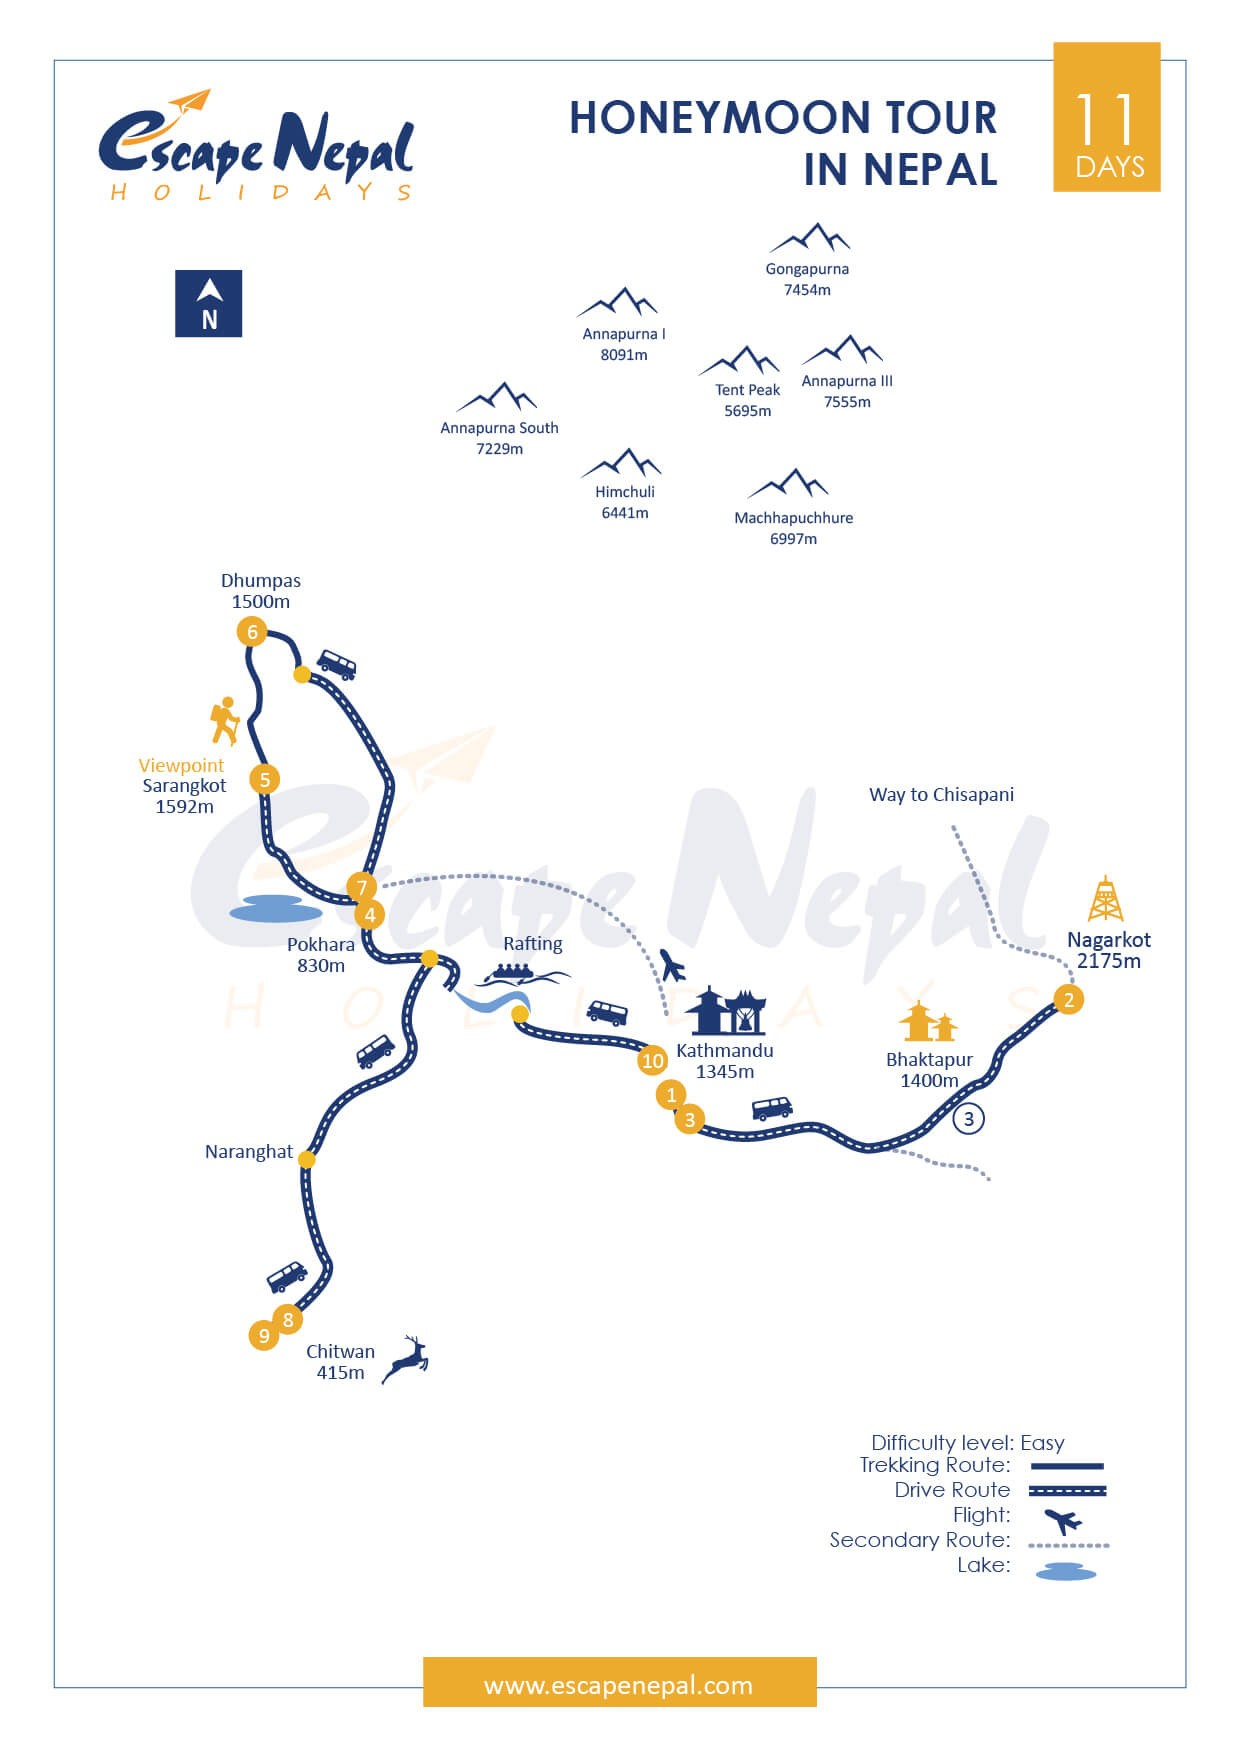 HONEYMOON IN NEPAL map